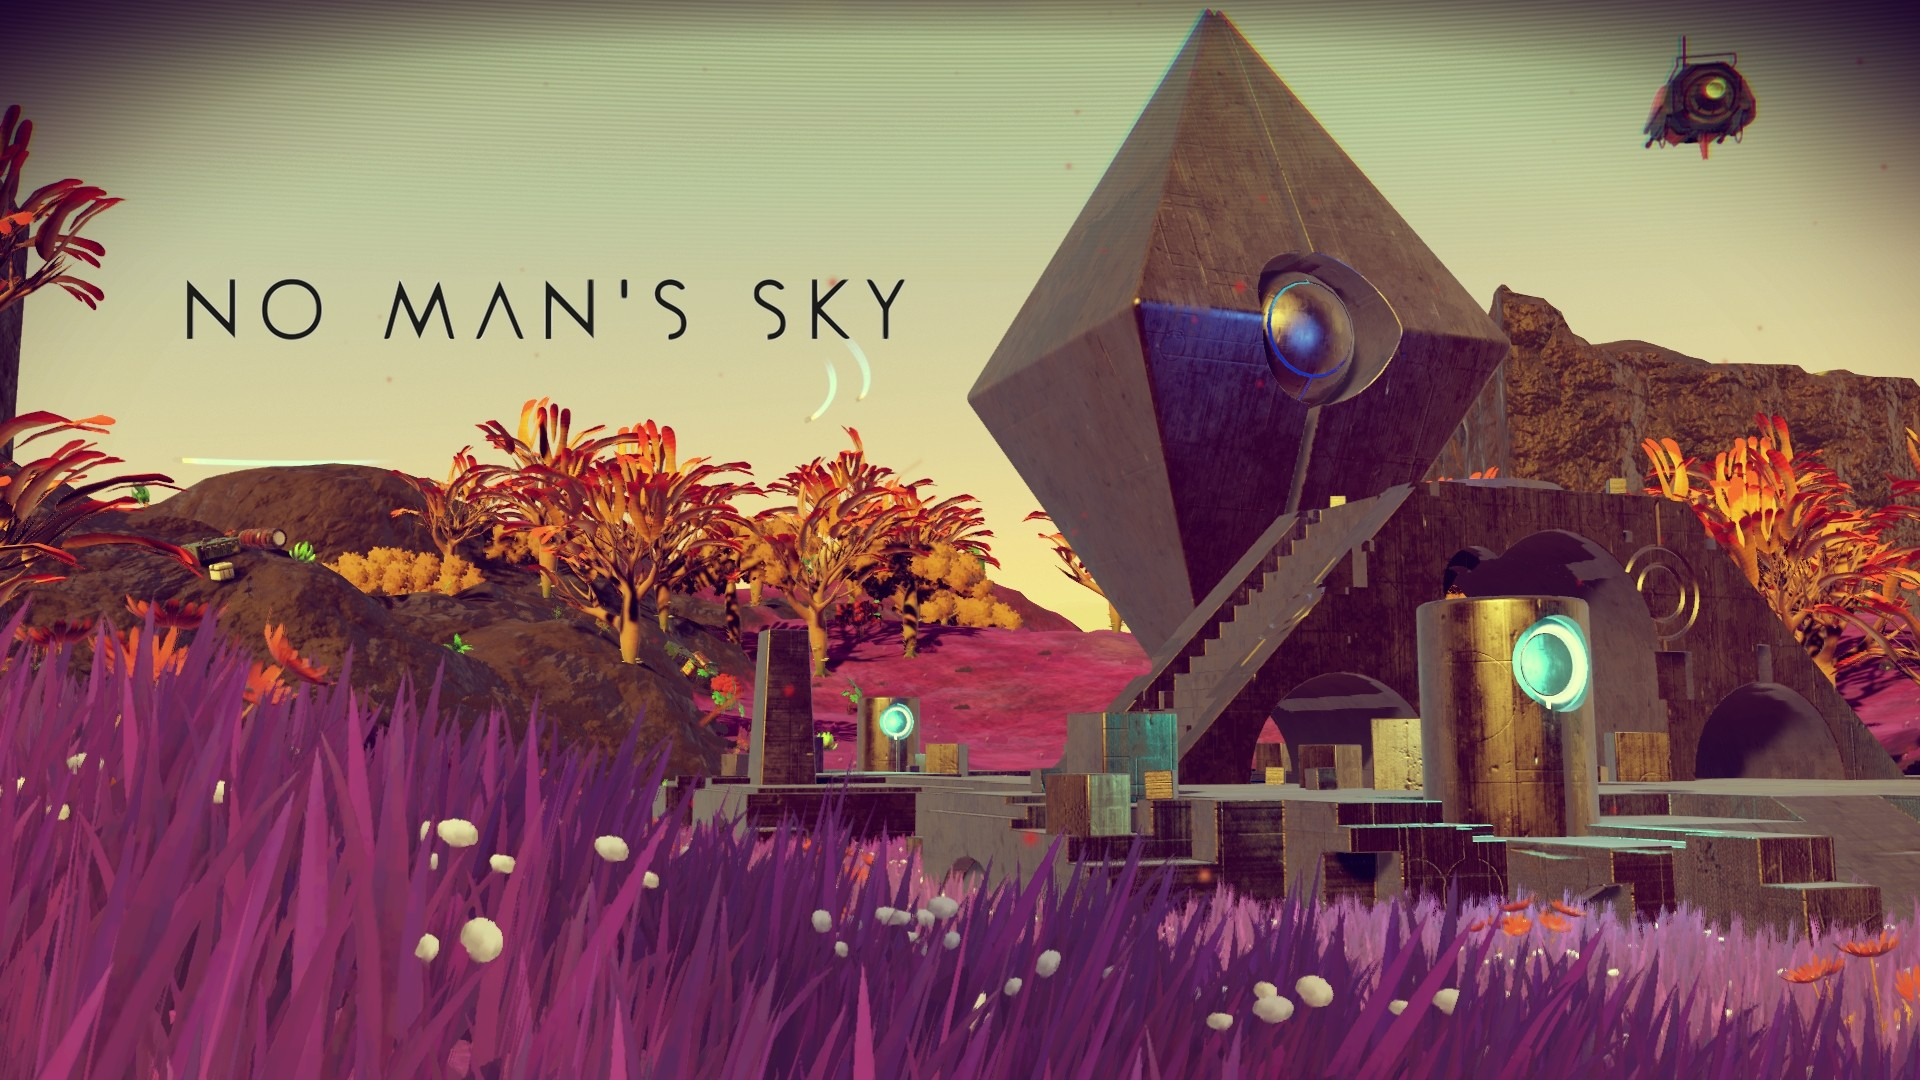 No Man's Sky Wallpaper Picture hd